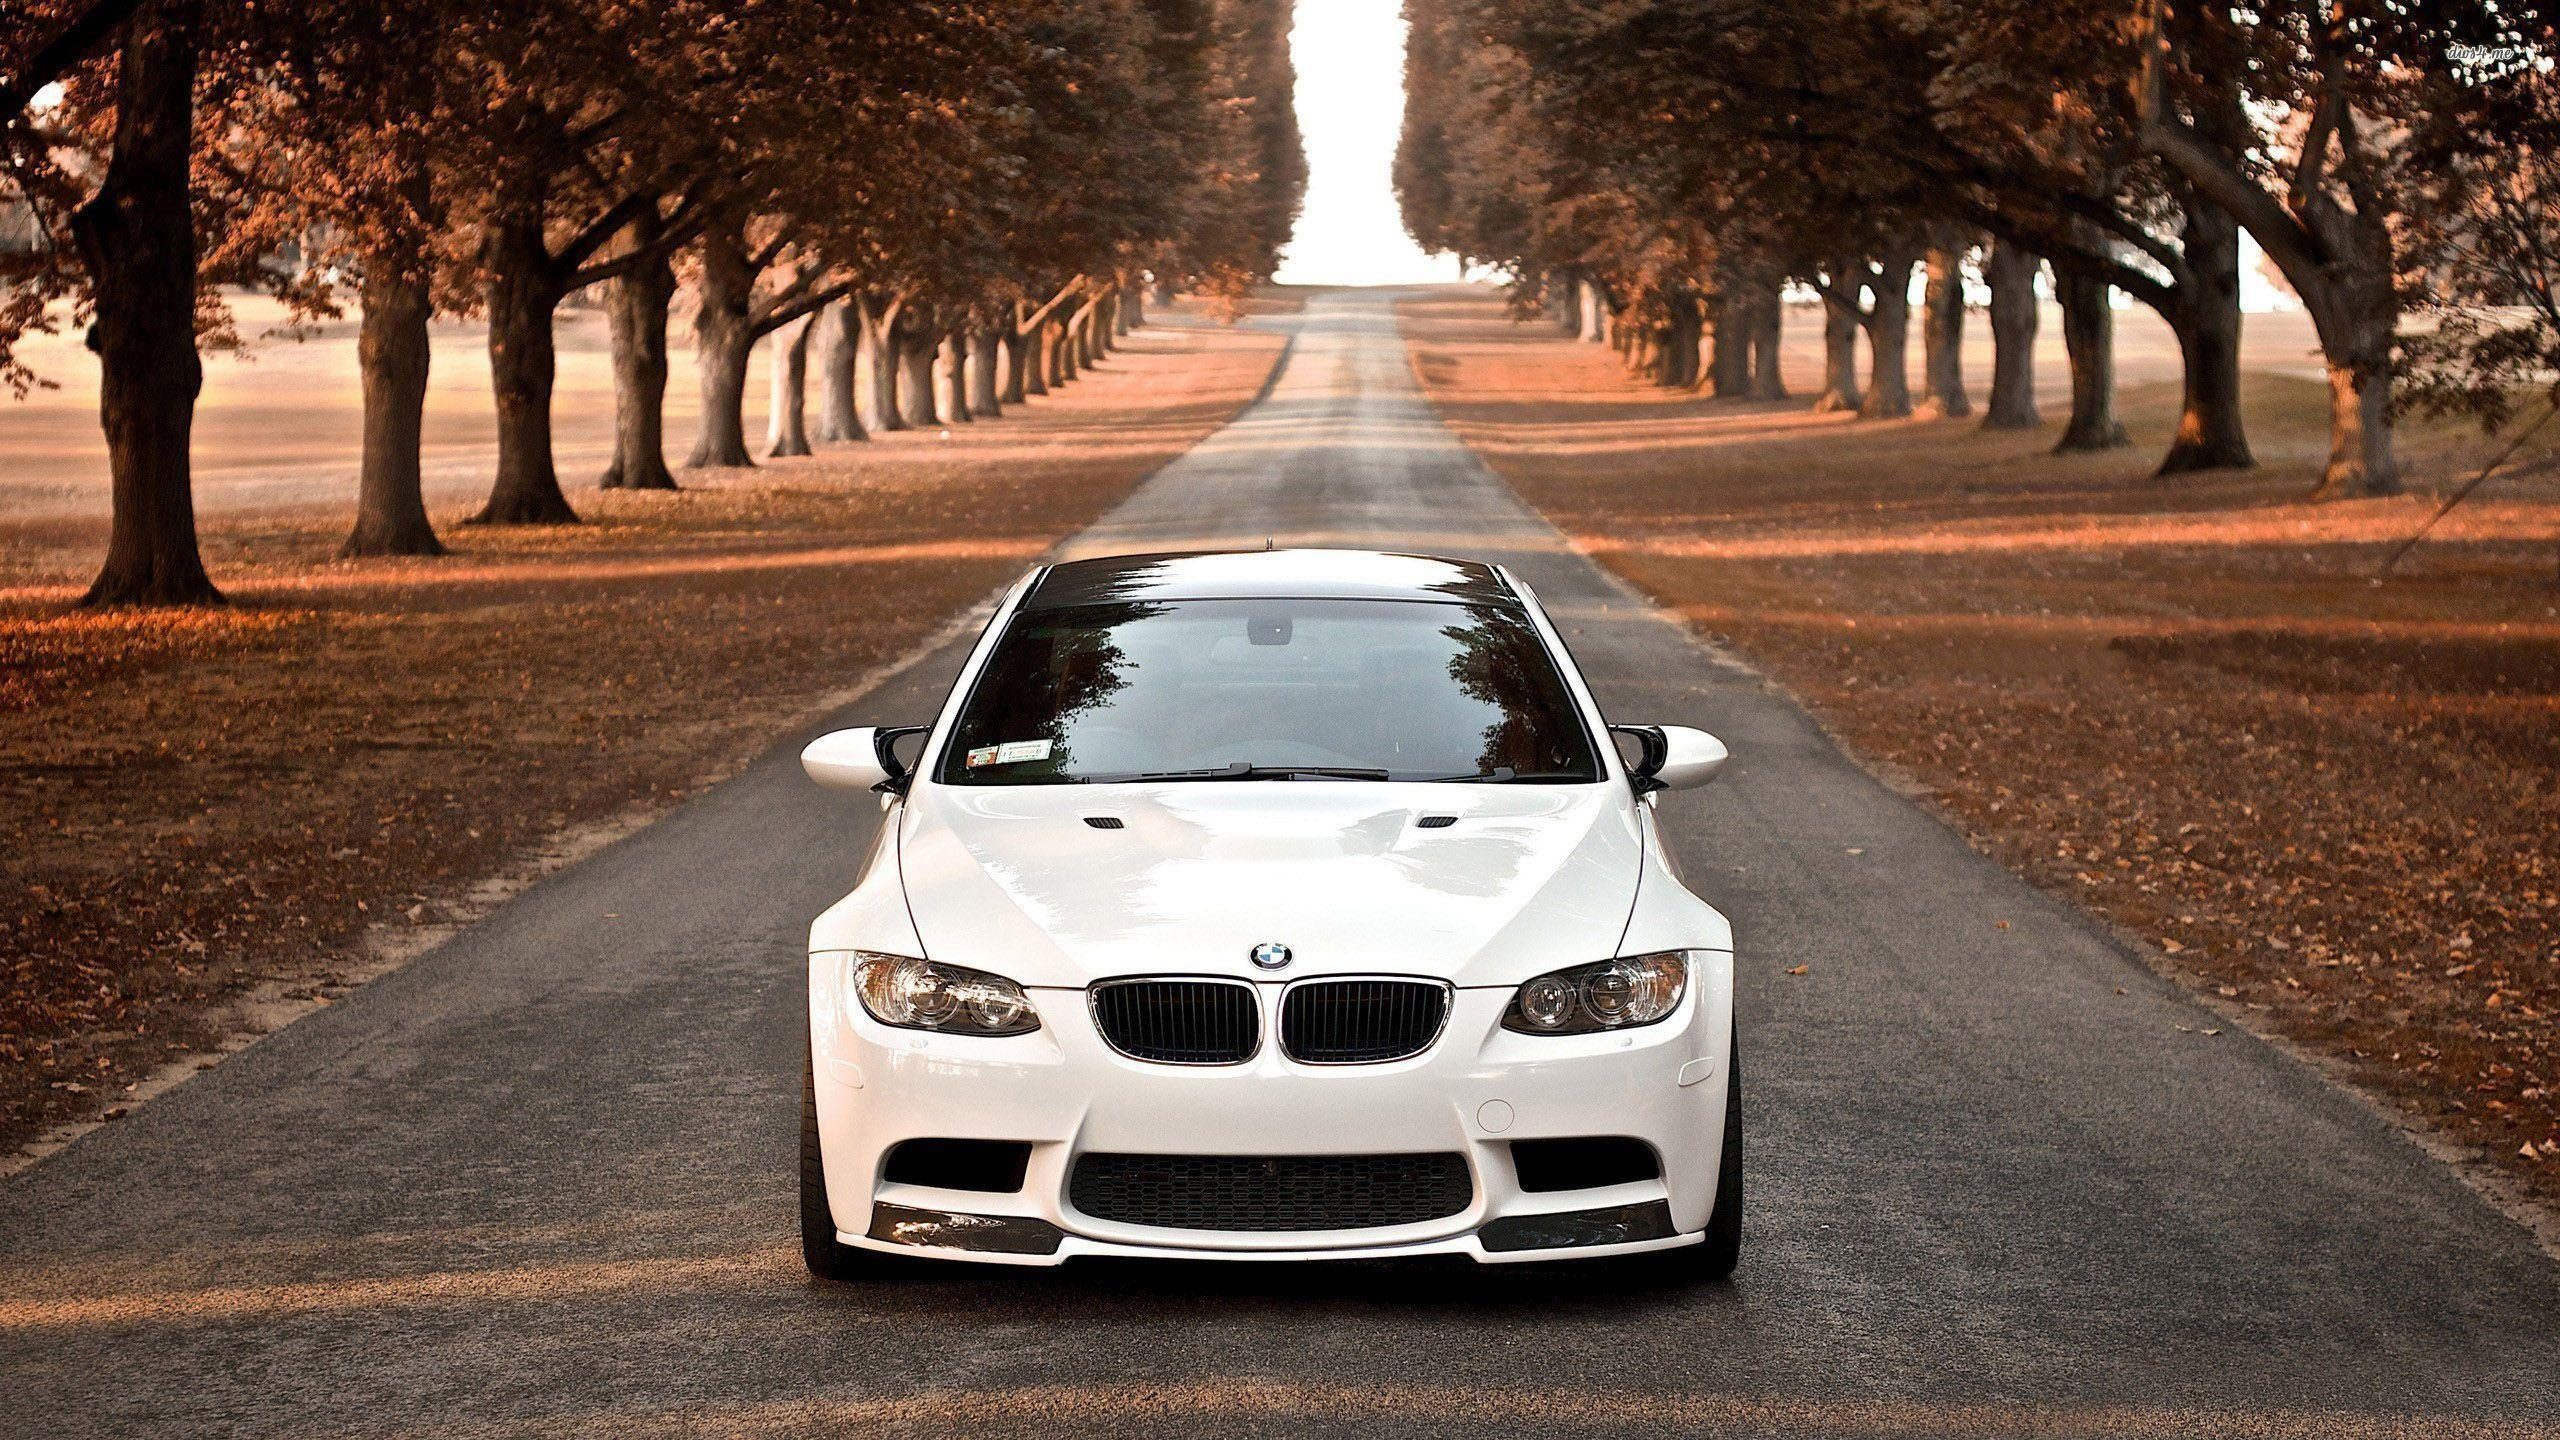 BMW E92 Wallpapers - Wallpaper Cave